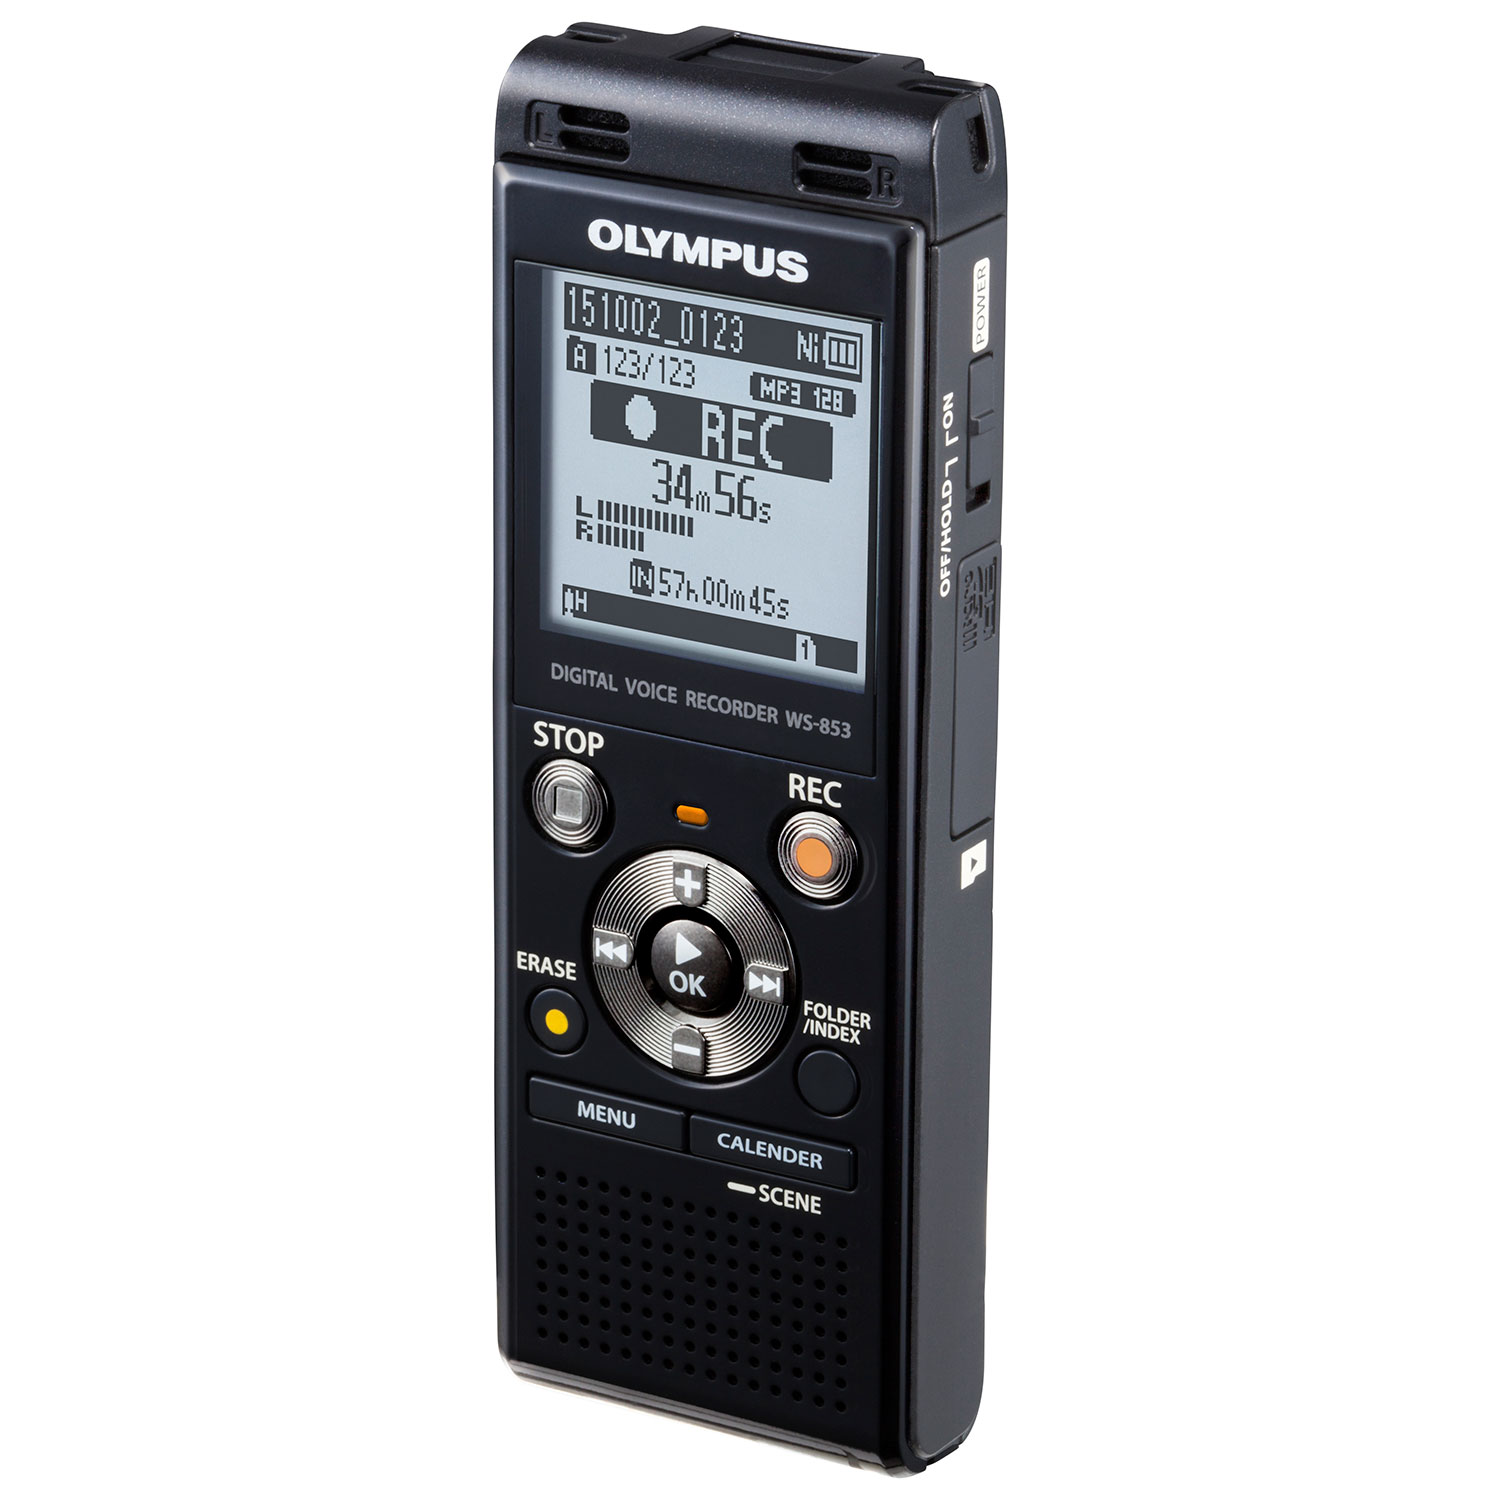 Olympus 4GB Digital Voice Recorder (VN-541PC) : Voice Recorders - Best Buy  Canada